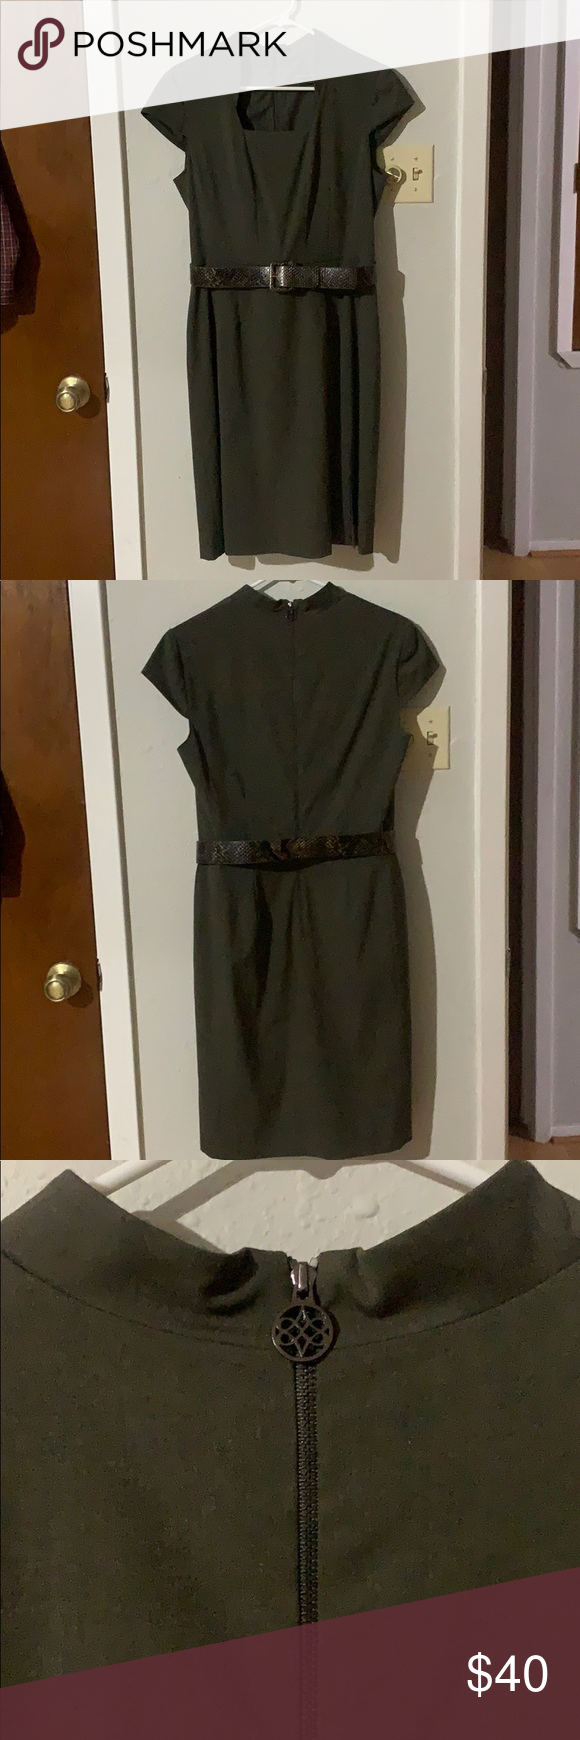 Antonio Melani Sage Green Dress a EUC. Sage green with snakeskin style belt. Form fitting and stretchy ANTONIO MELANI Dresses #sagegreendress Antonio Melani Sage Green Dress a EUC. Sage green with snakeskin style belt. Form fitting and stretchy ANTONIO MELANI Dresses #sagegreendress